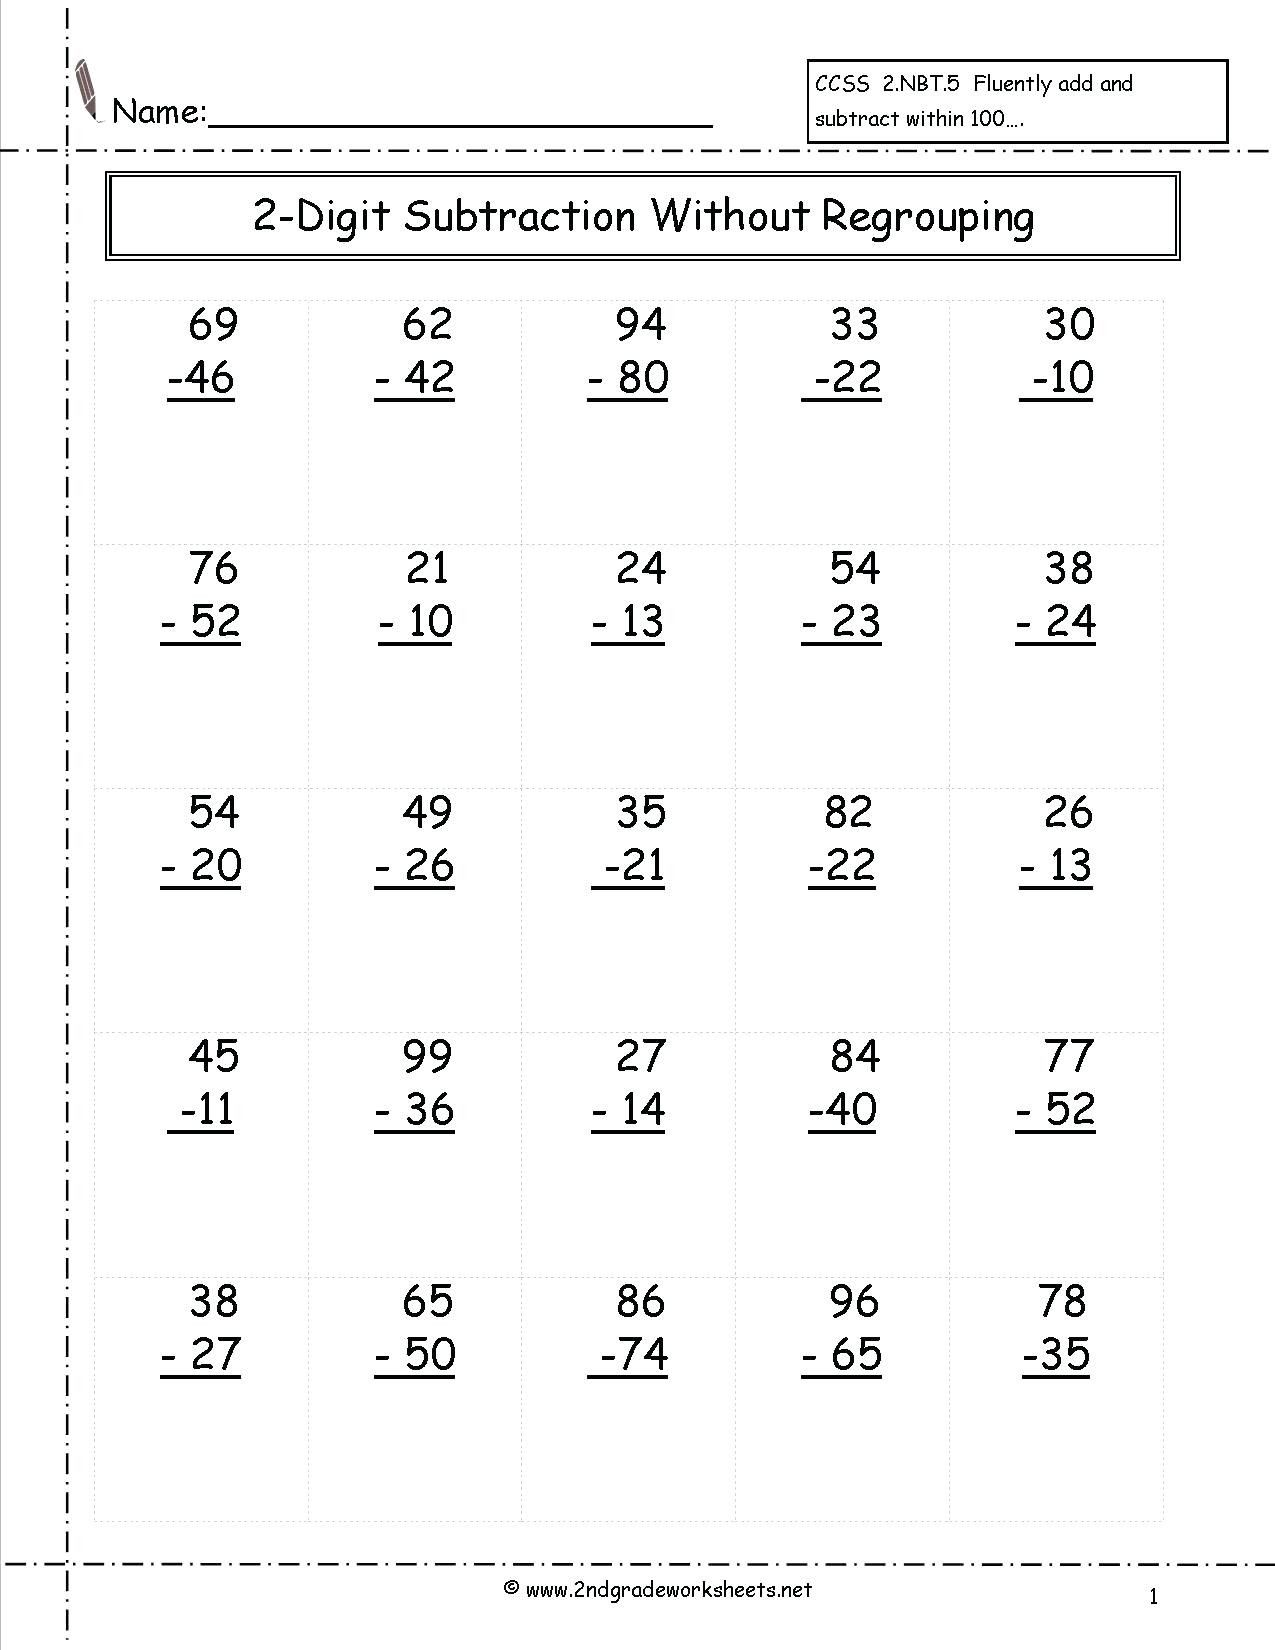 Subtraction Worksheets for Grade 1 Of 5 Free Math Worksheets First Grade 1  Addition Add In Columns 2 Digit Plus 1 Digit No Regroupi - Free Templates [ 1650 x 1275 Pixel ]